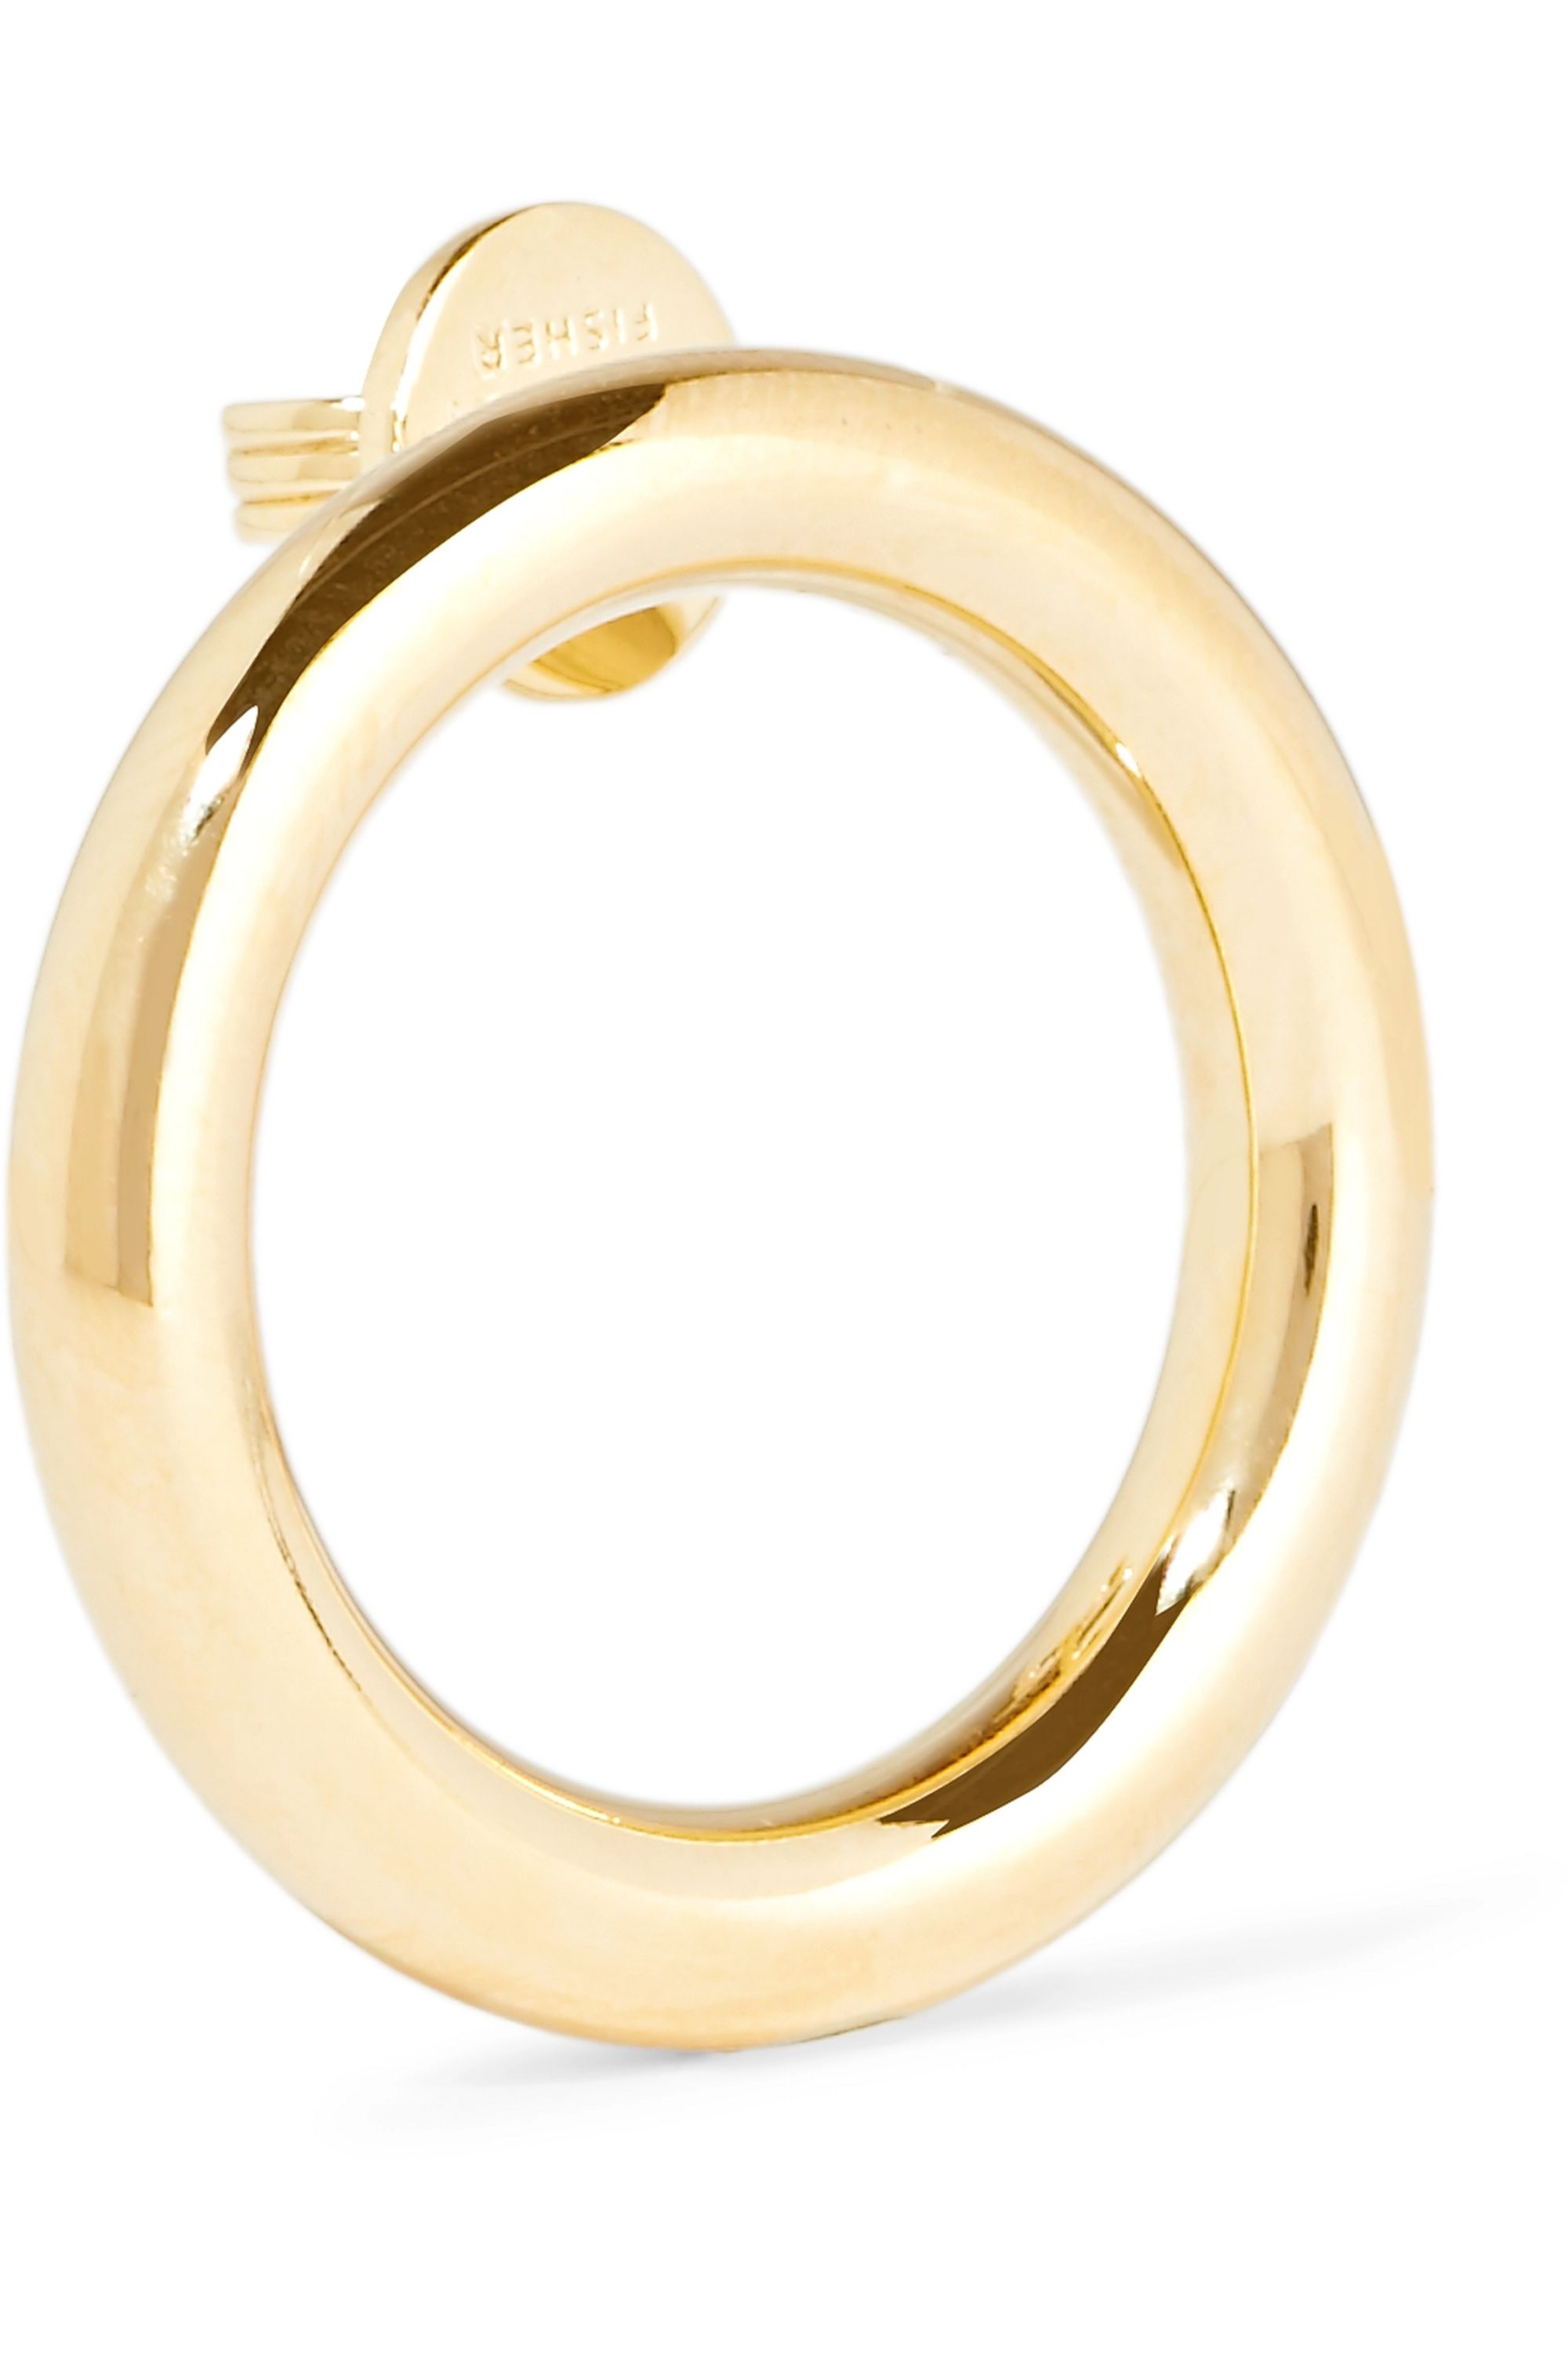 Jennifer Fisher Smooth Stick and Circle gold and silver-plated earrings